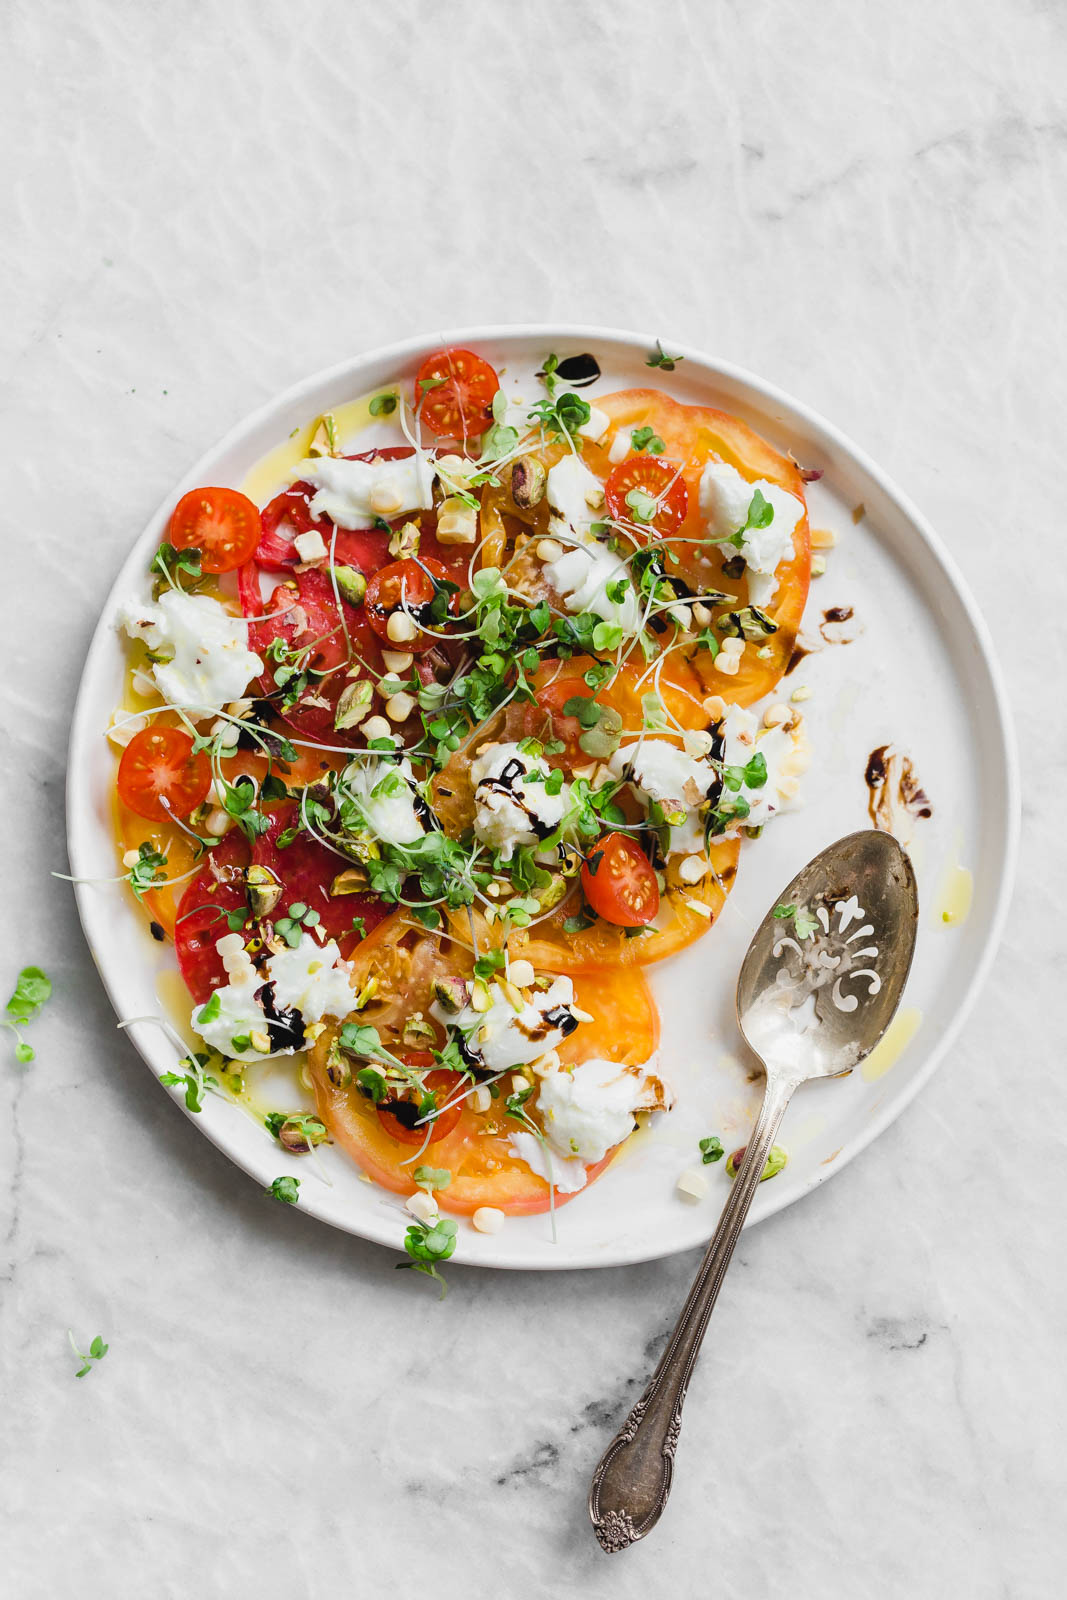 A raw Heirloom Tomato Carpaccio made with thinly sliced heirloom tomatoes, fresh burrata cheese, pistachios, corn, and microgreens.